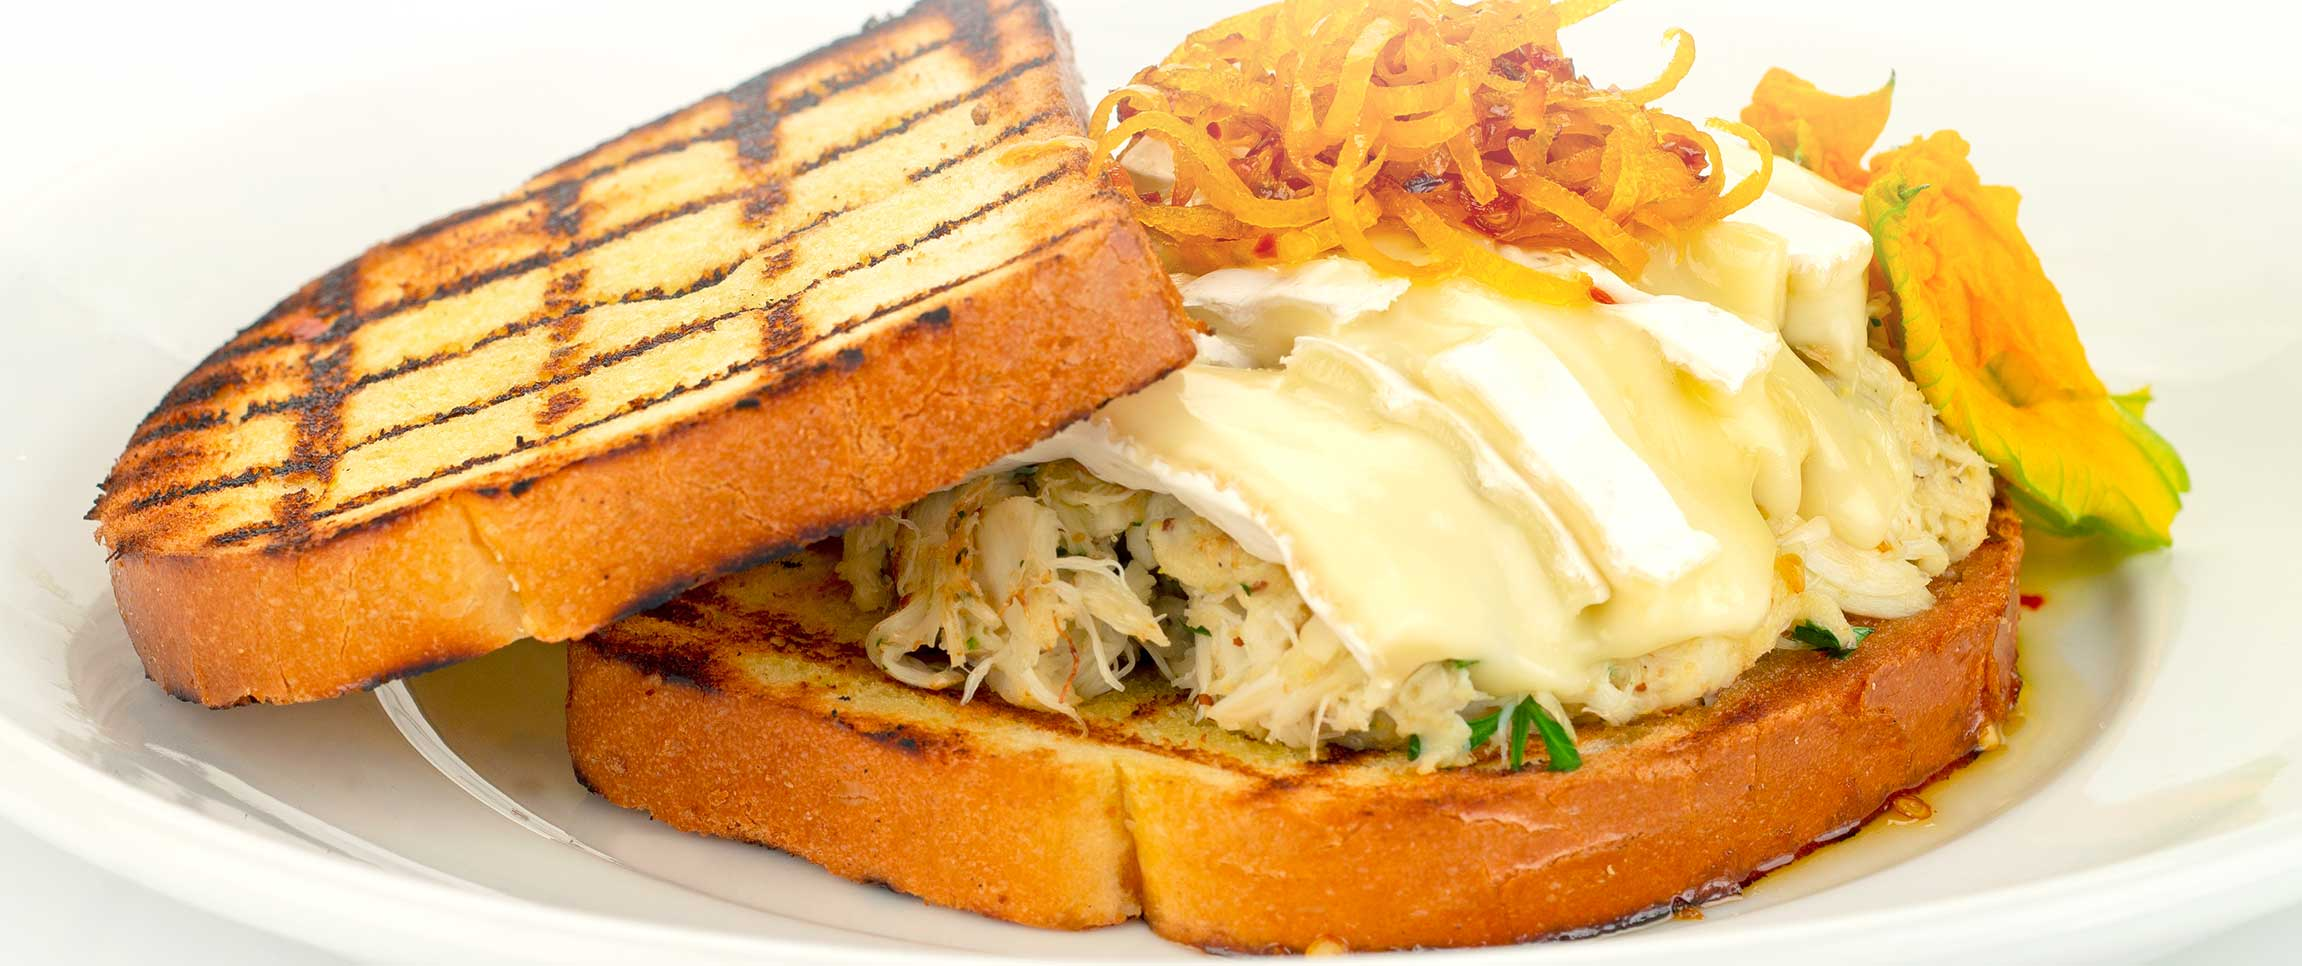 Crab Meat and Melted Brie Sandwich